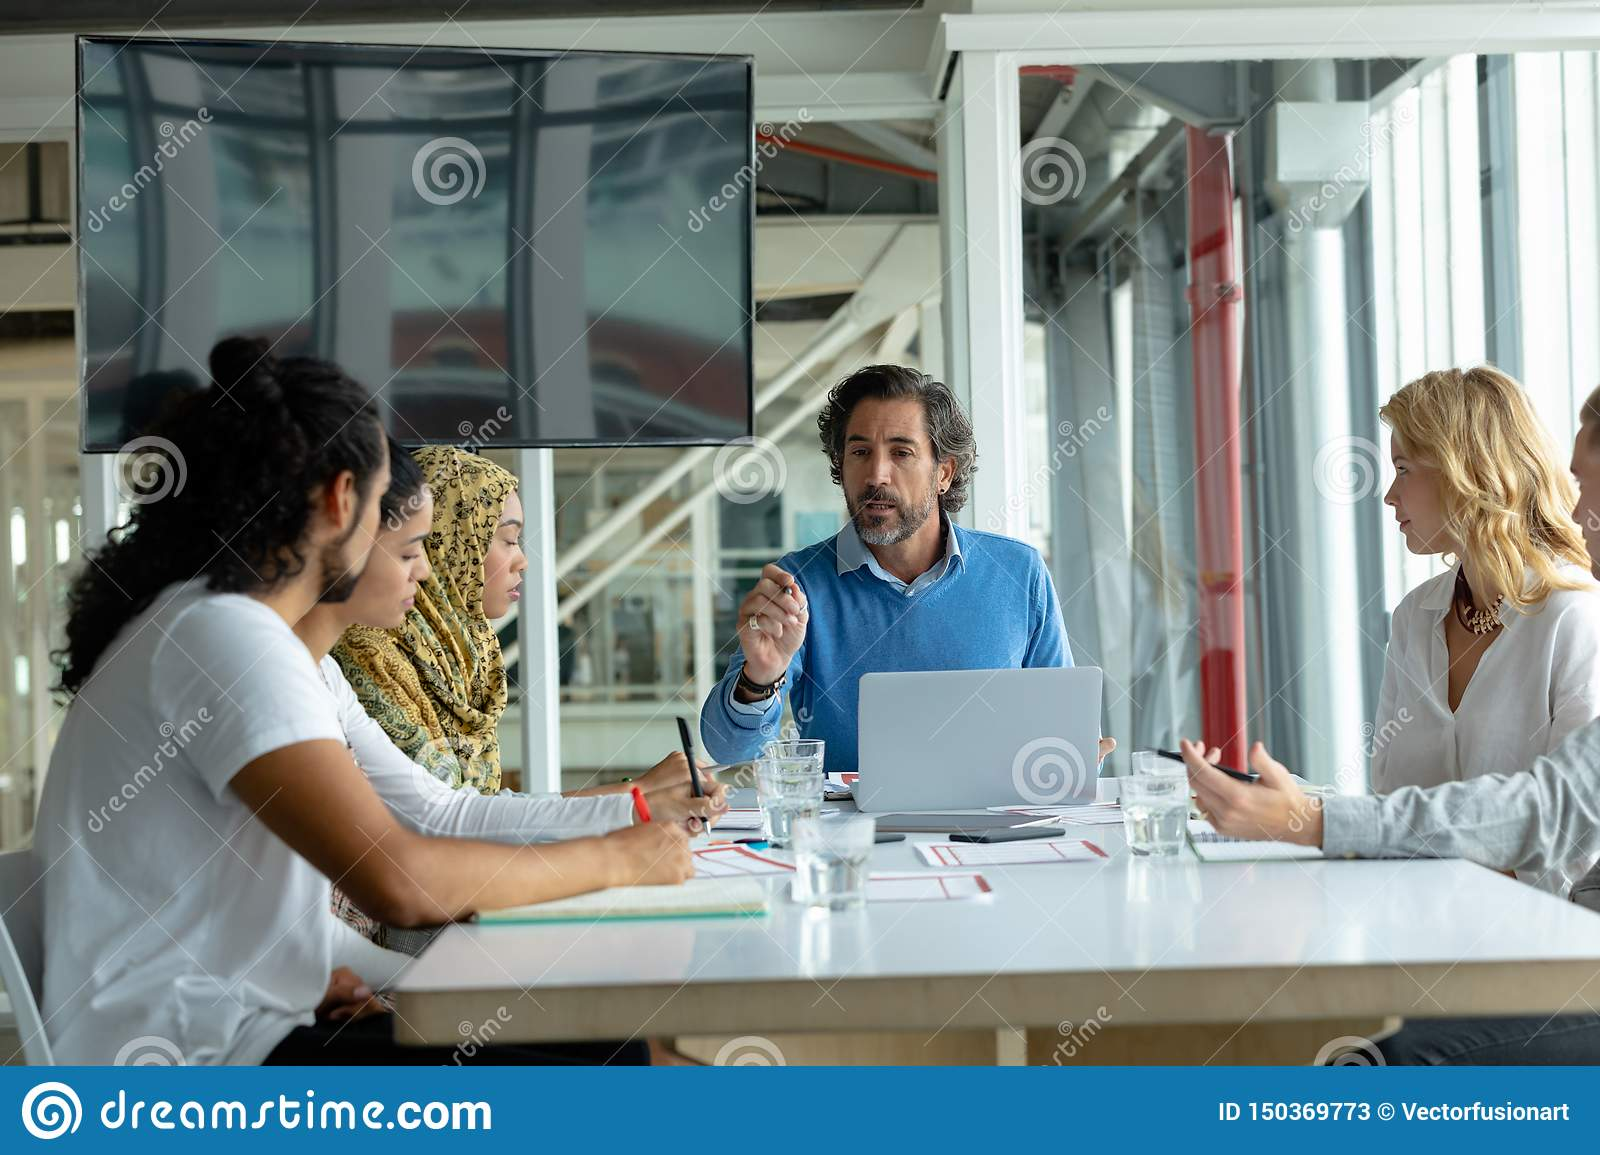 Business people discussing with each other in meeting at conference room in a modern office